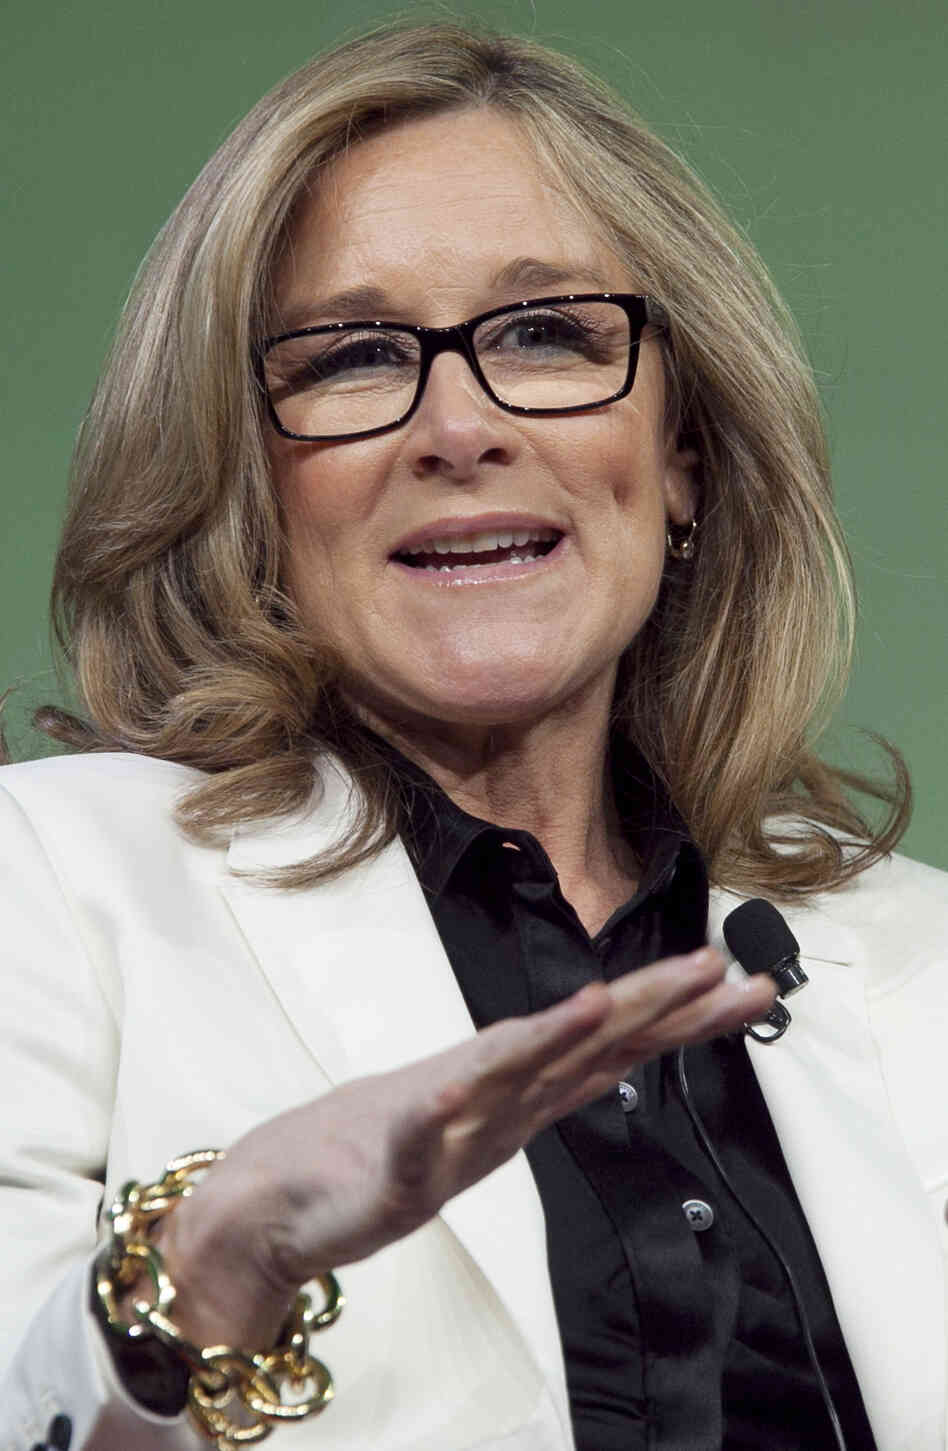 Angela Ahrendts is leaving her post as CEO of Burberry to head the online and retail division at Apple. She will become the first woman in the tech company's senior e